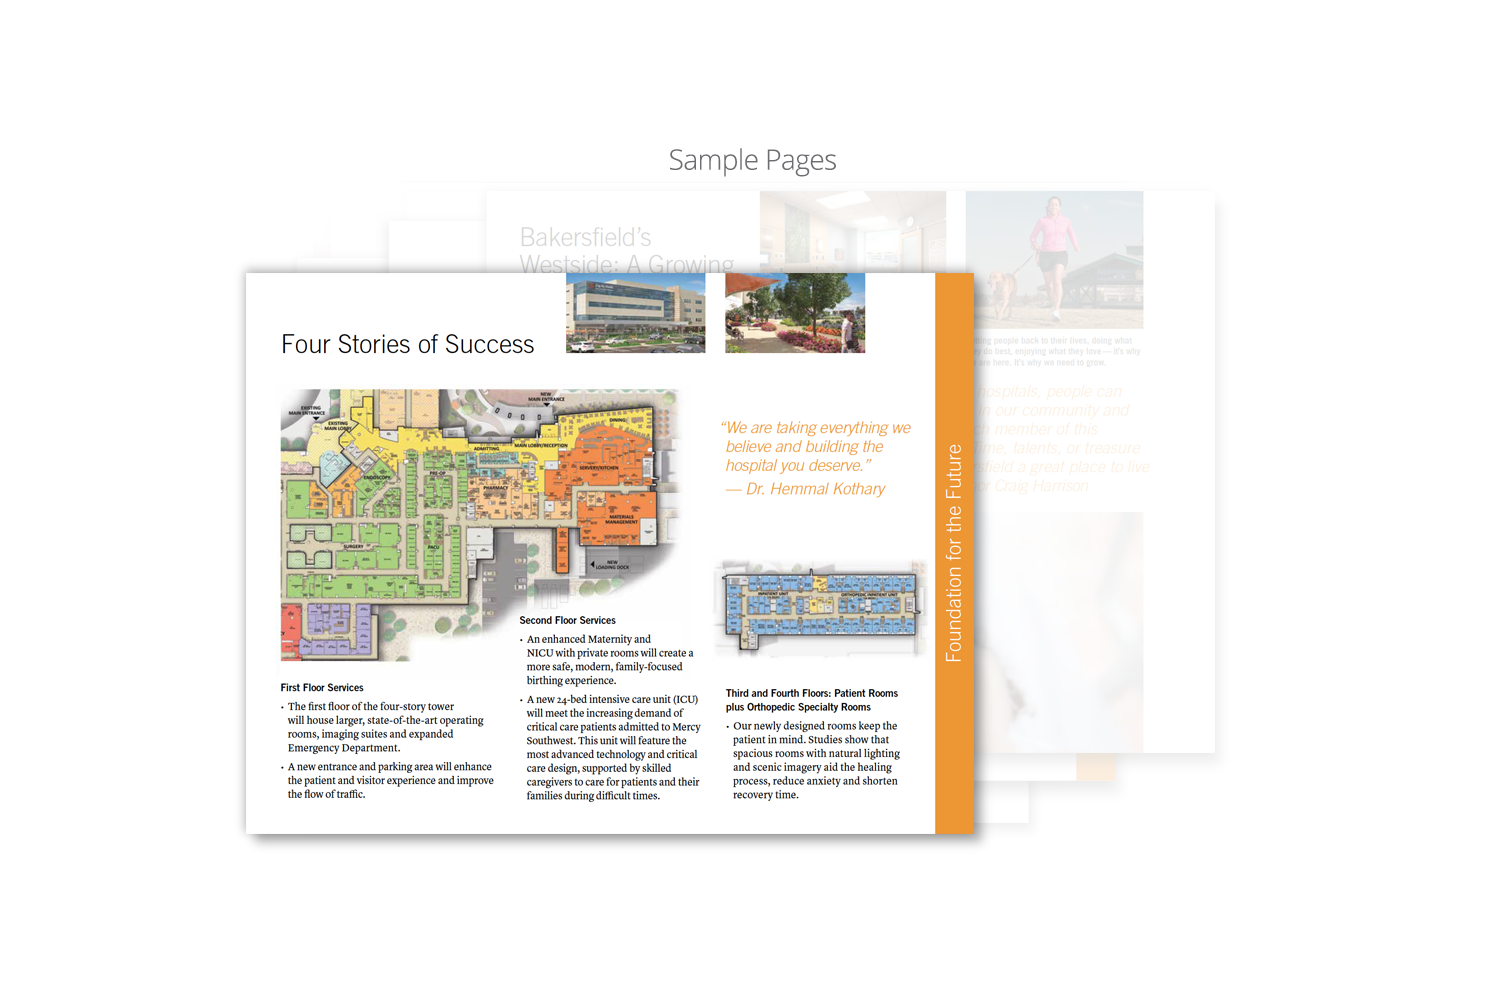 Capital Campaign Brochure for Dignity Health_sample page 6